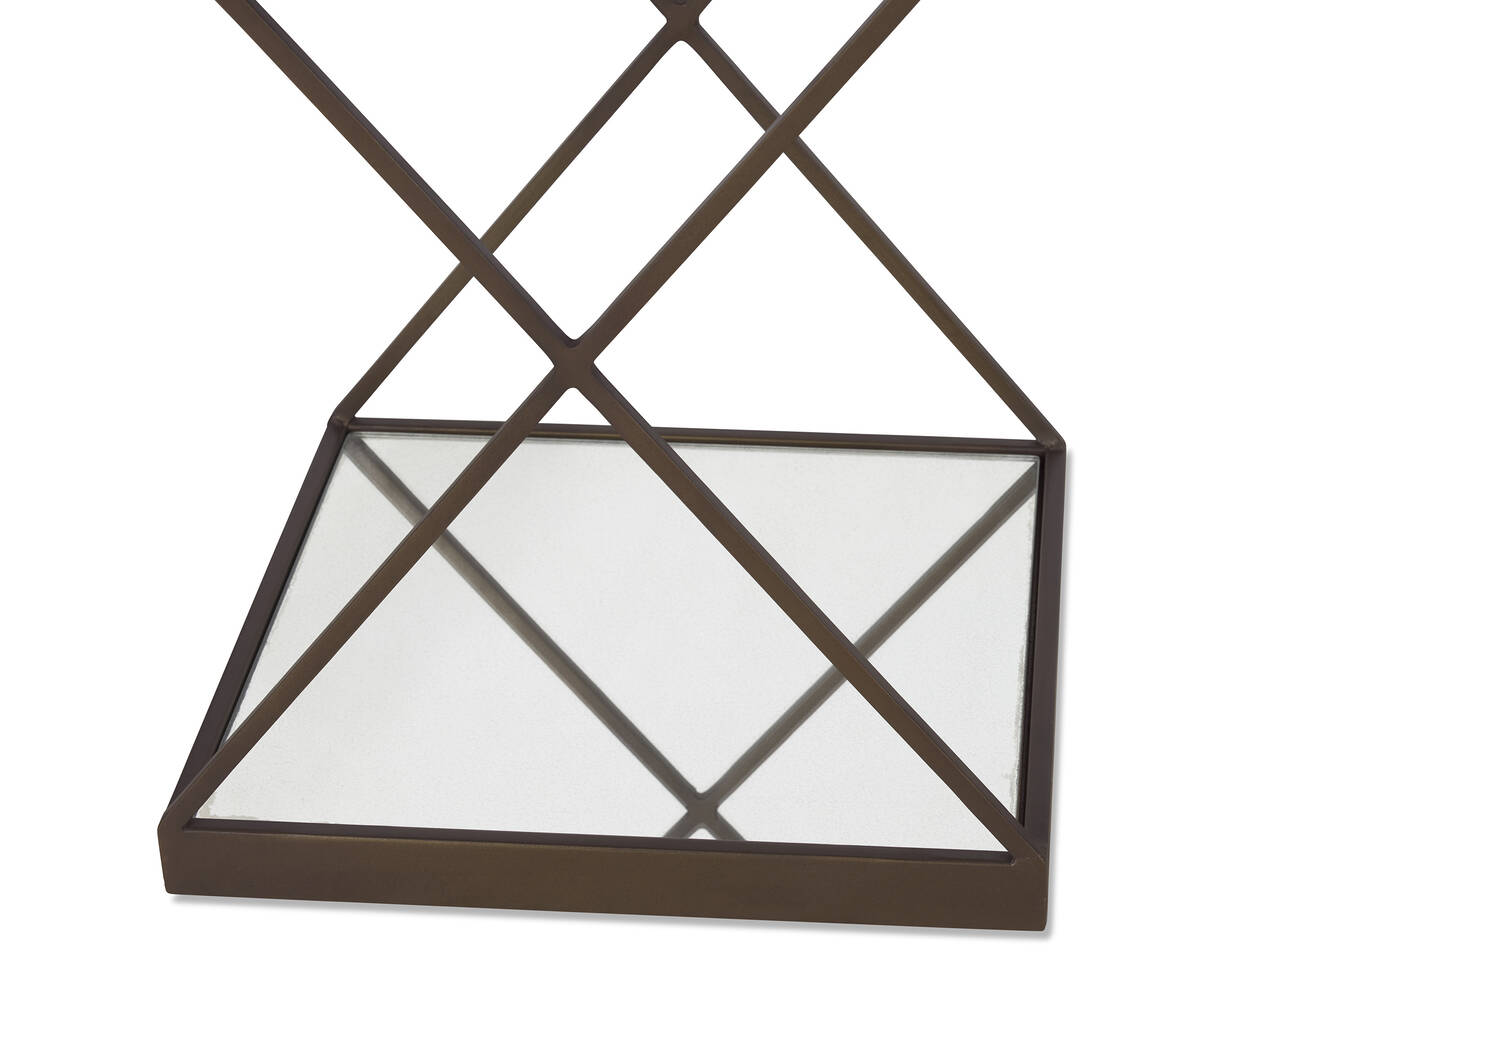 Table d'appoint Gaines -laiton